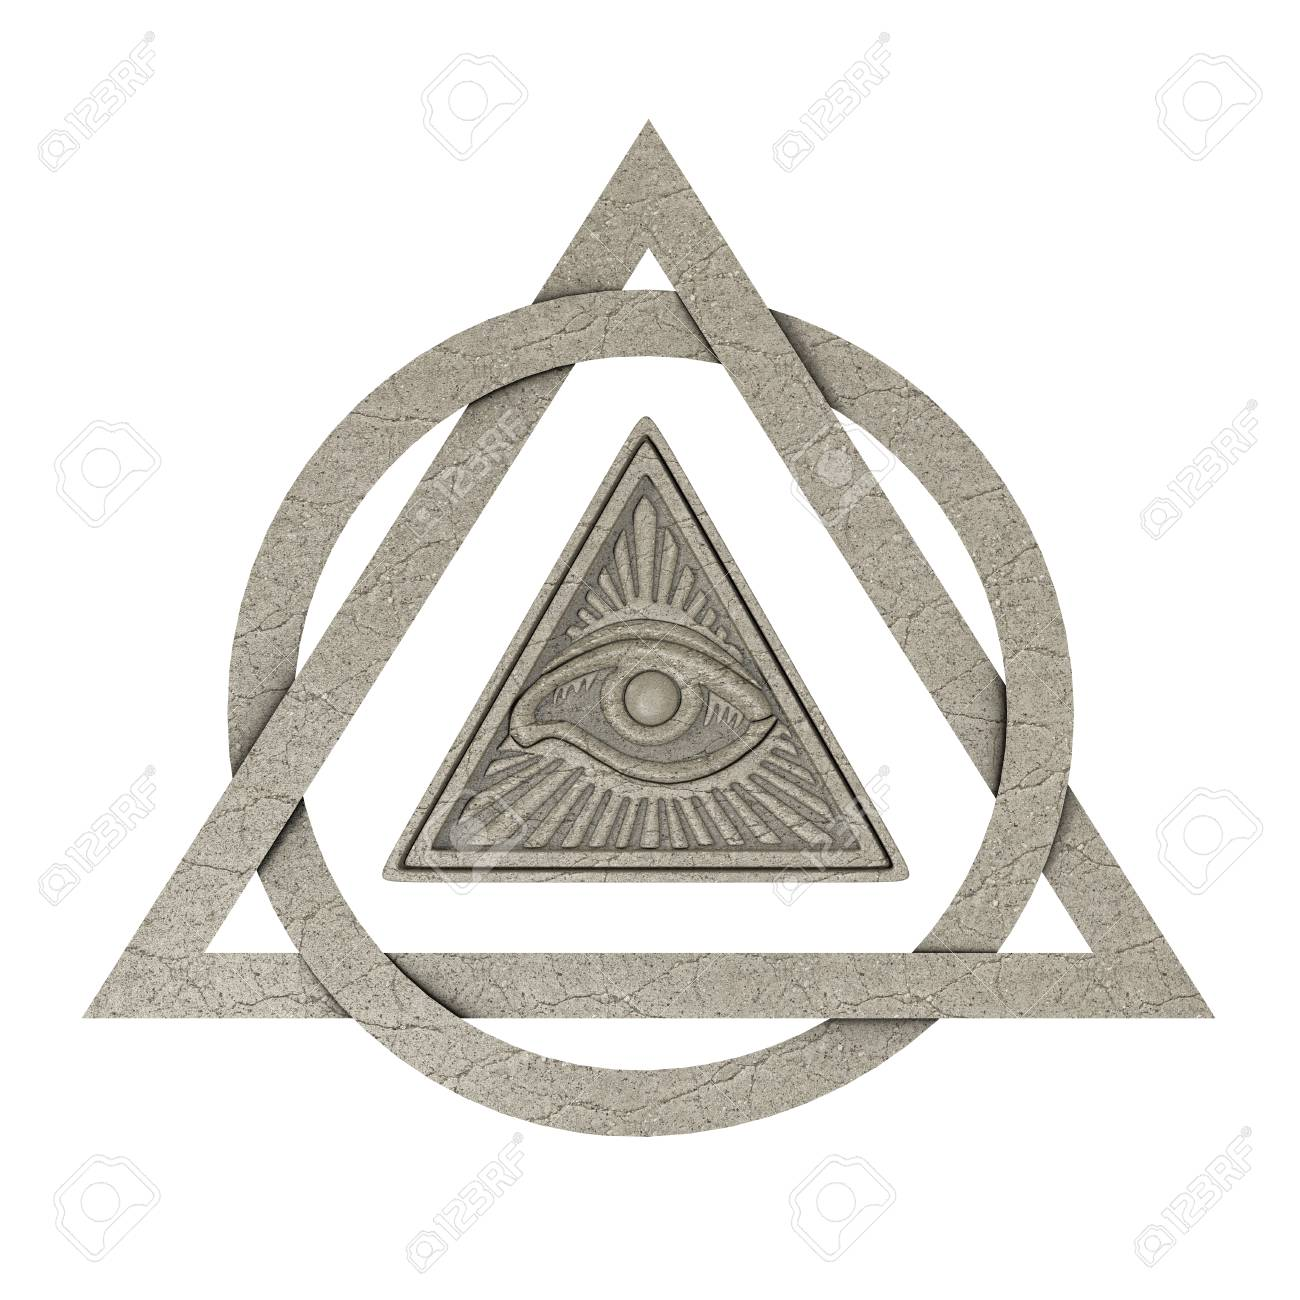 Masonic symbol concept all seeing eye inside pyramid triangle masonic symbol concept all seeing eye inside pyramid triangle as stone on a white background buycottarizona Images